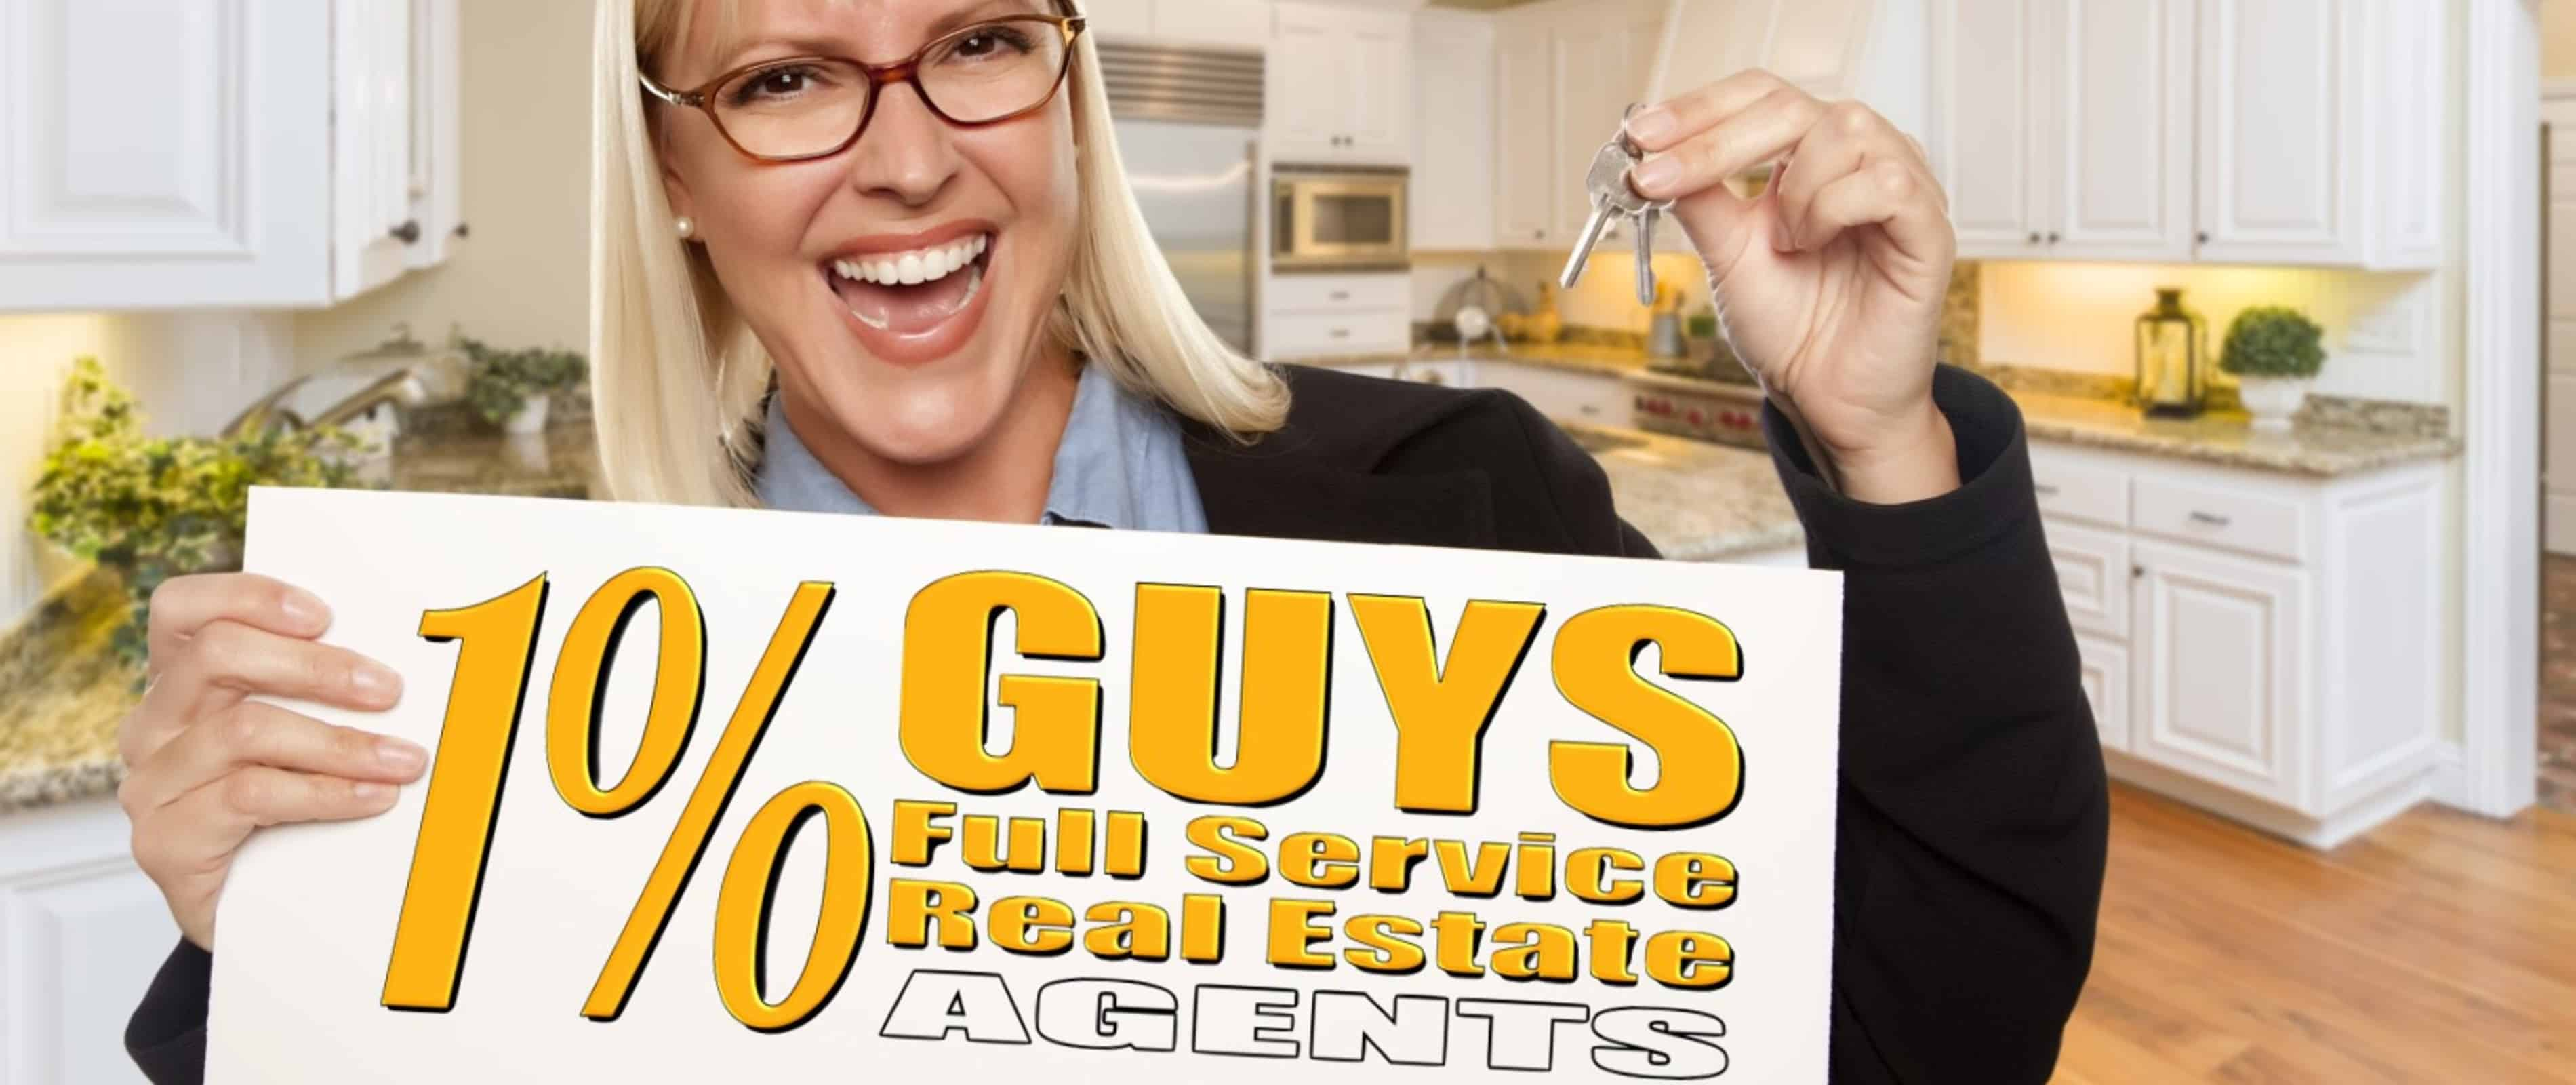 1% Guys Full Service Real Estate Agents